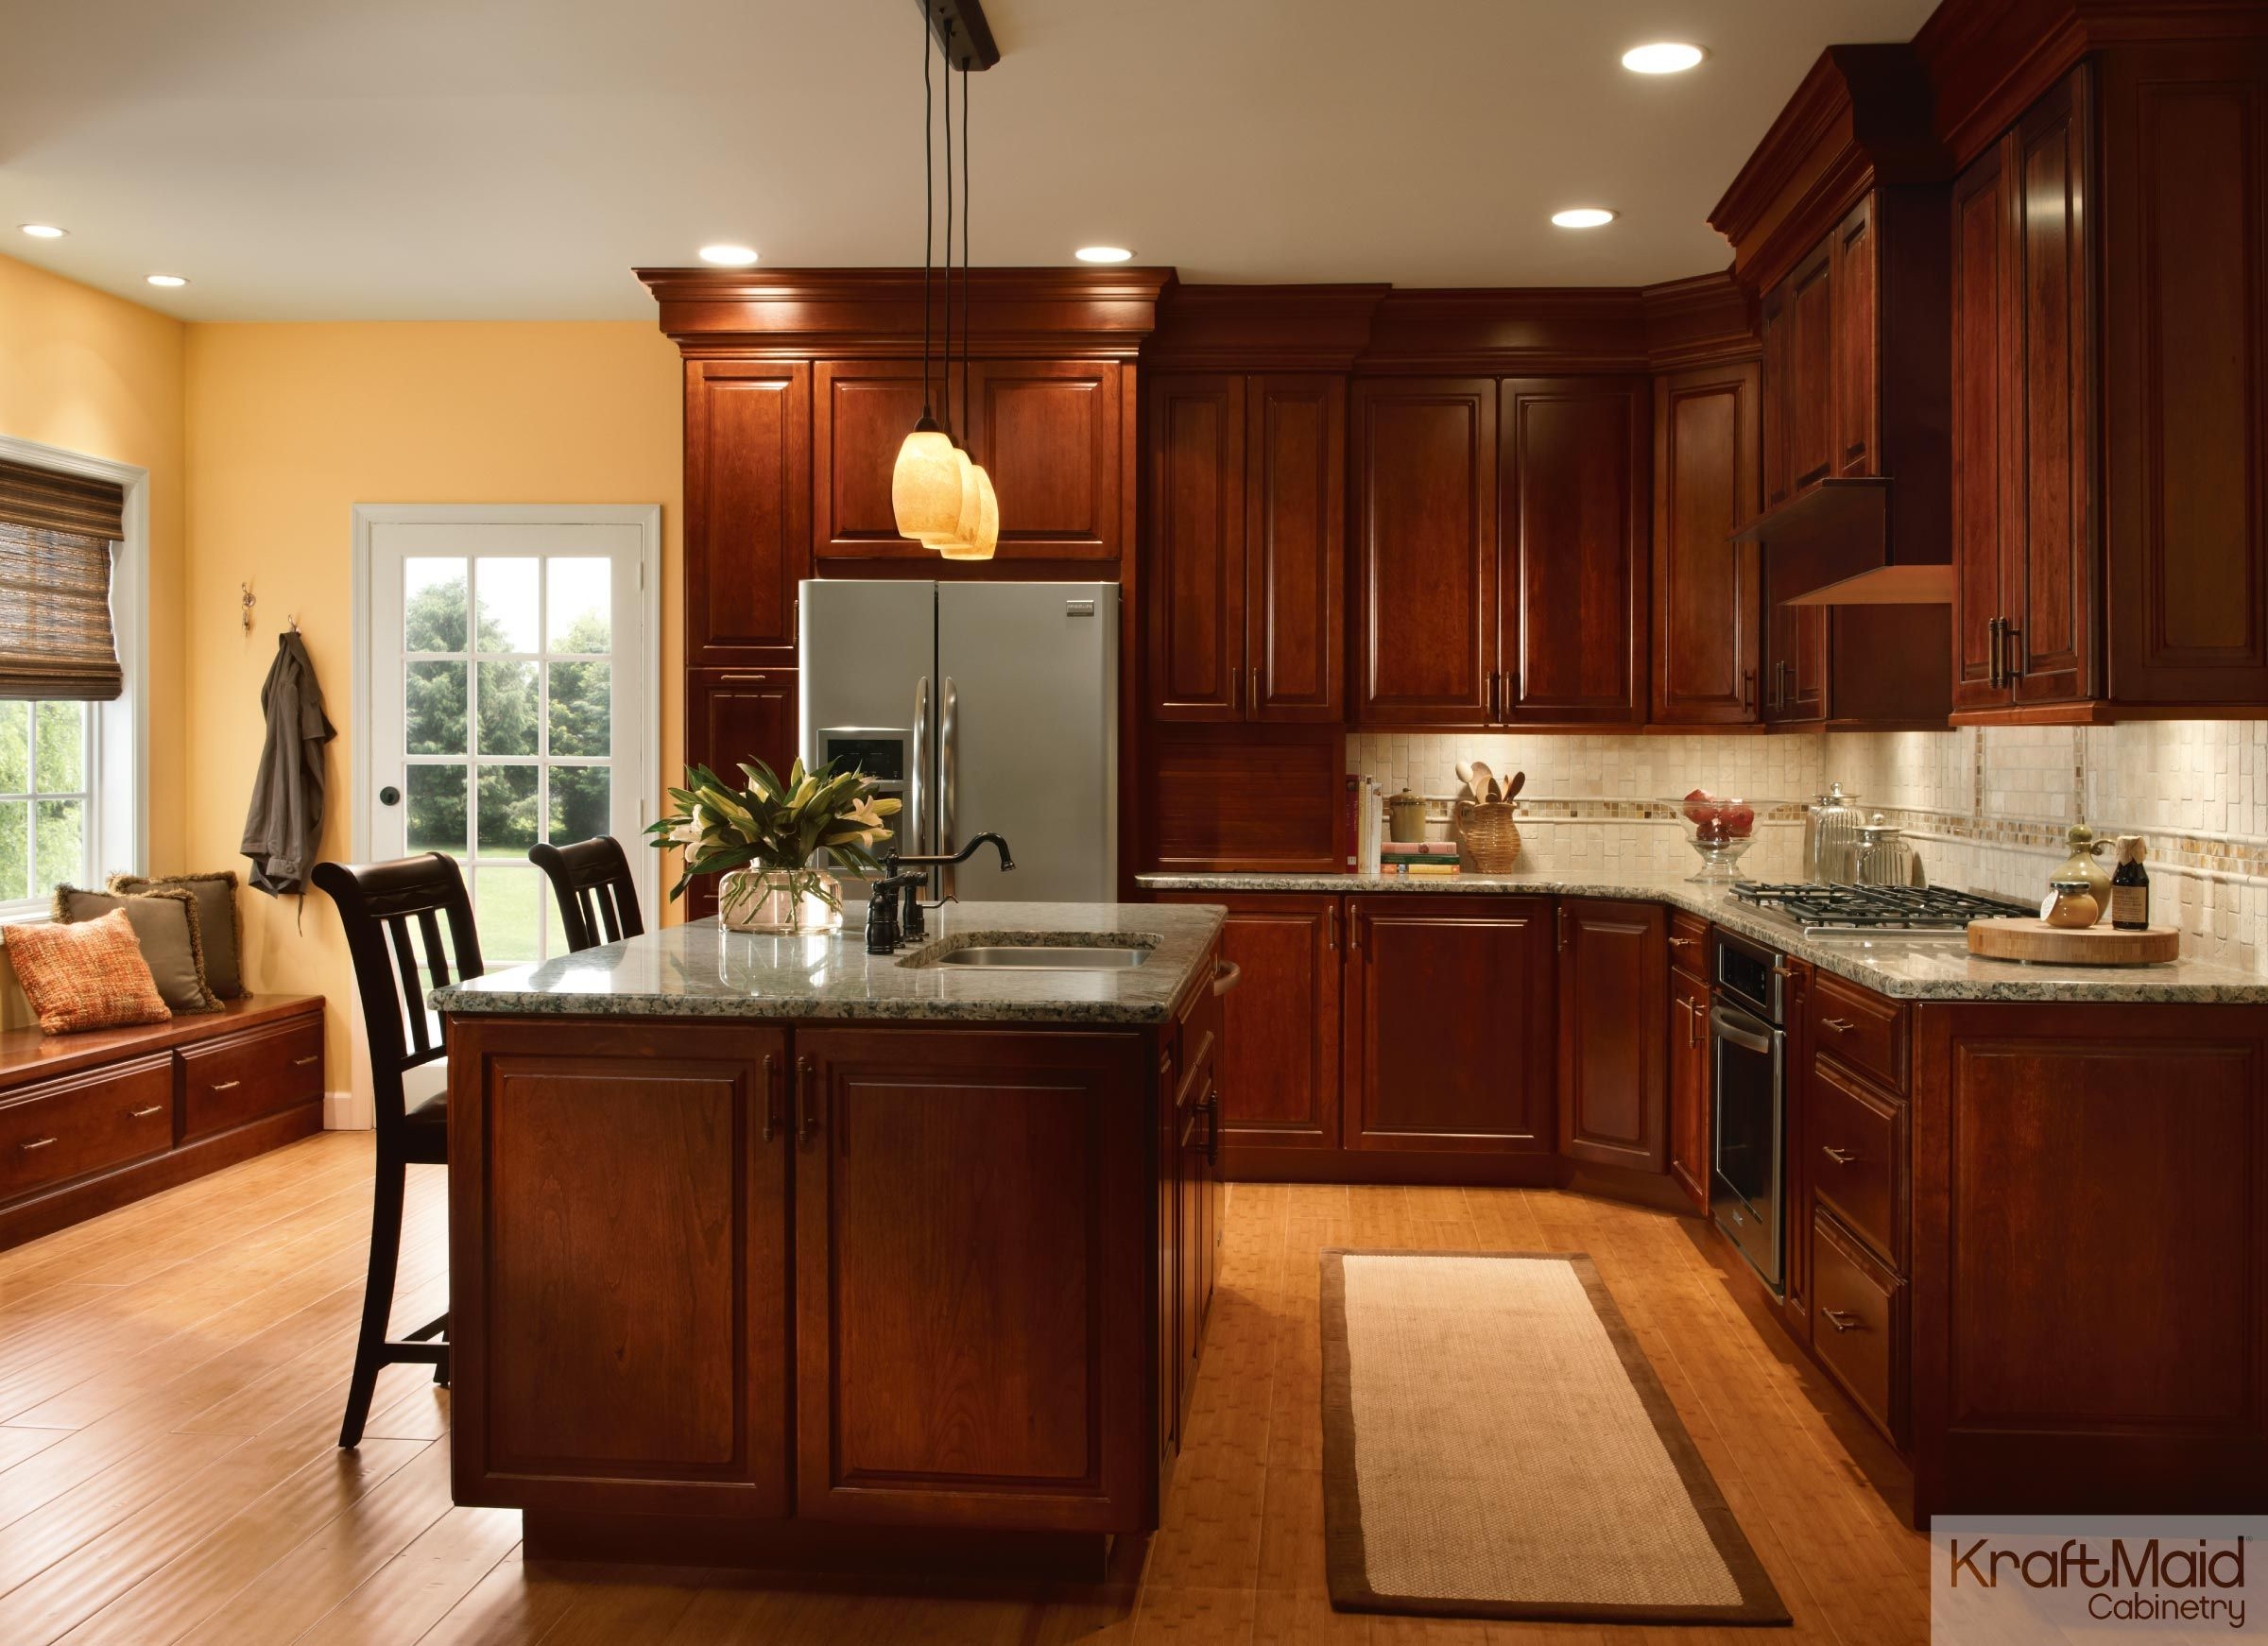 Timeless Traditions Cherry kitchen, Kraftmaid